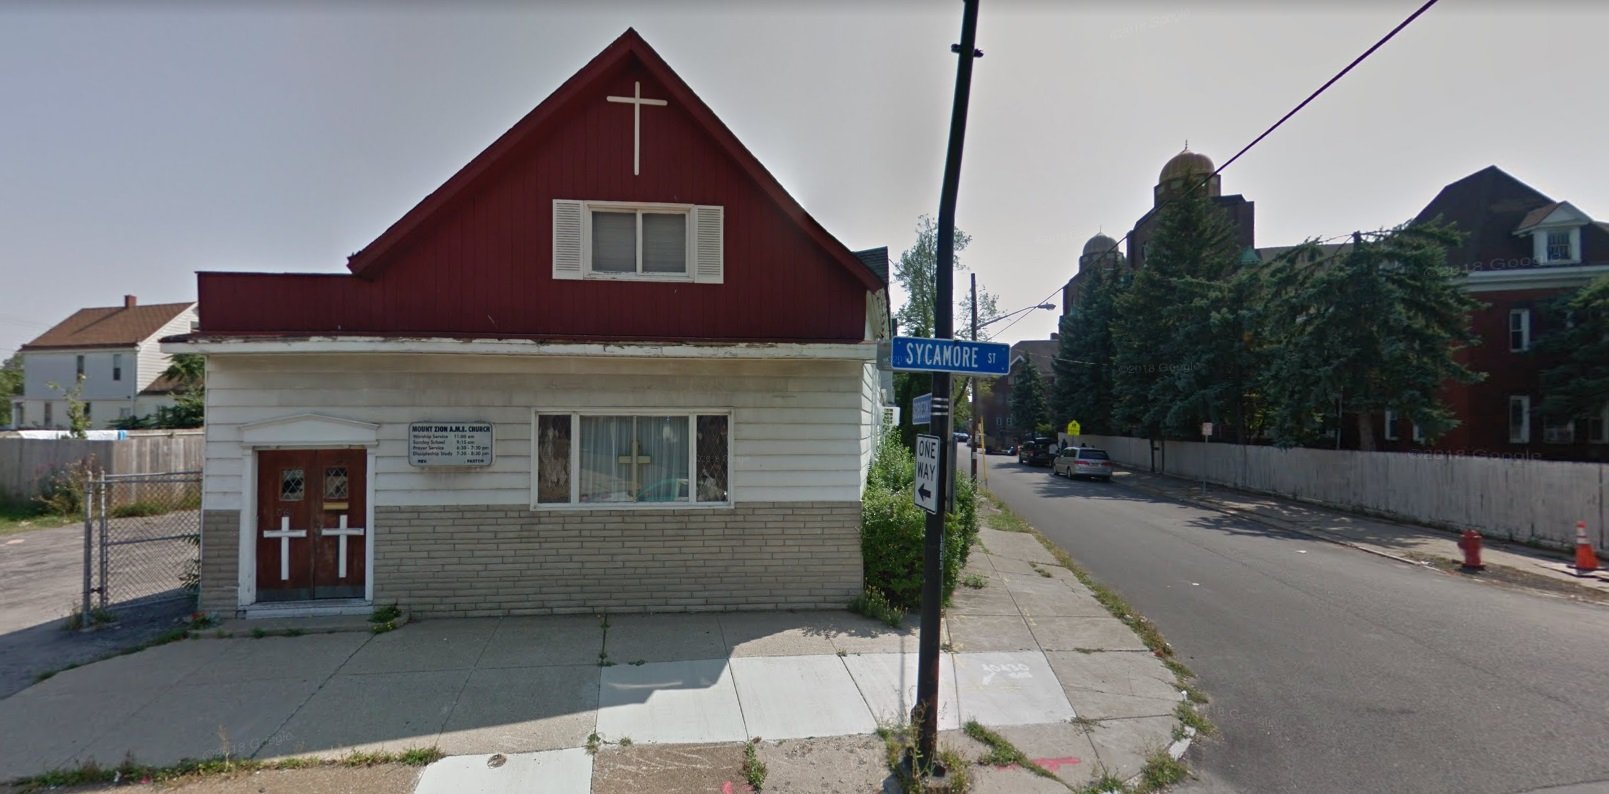 Property owner wants to turn former church into corner store, Halal